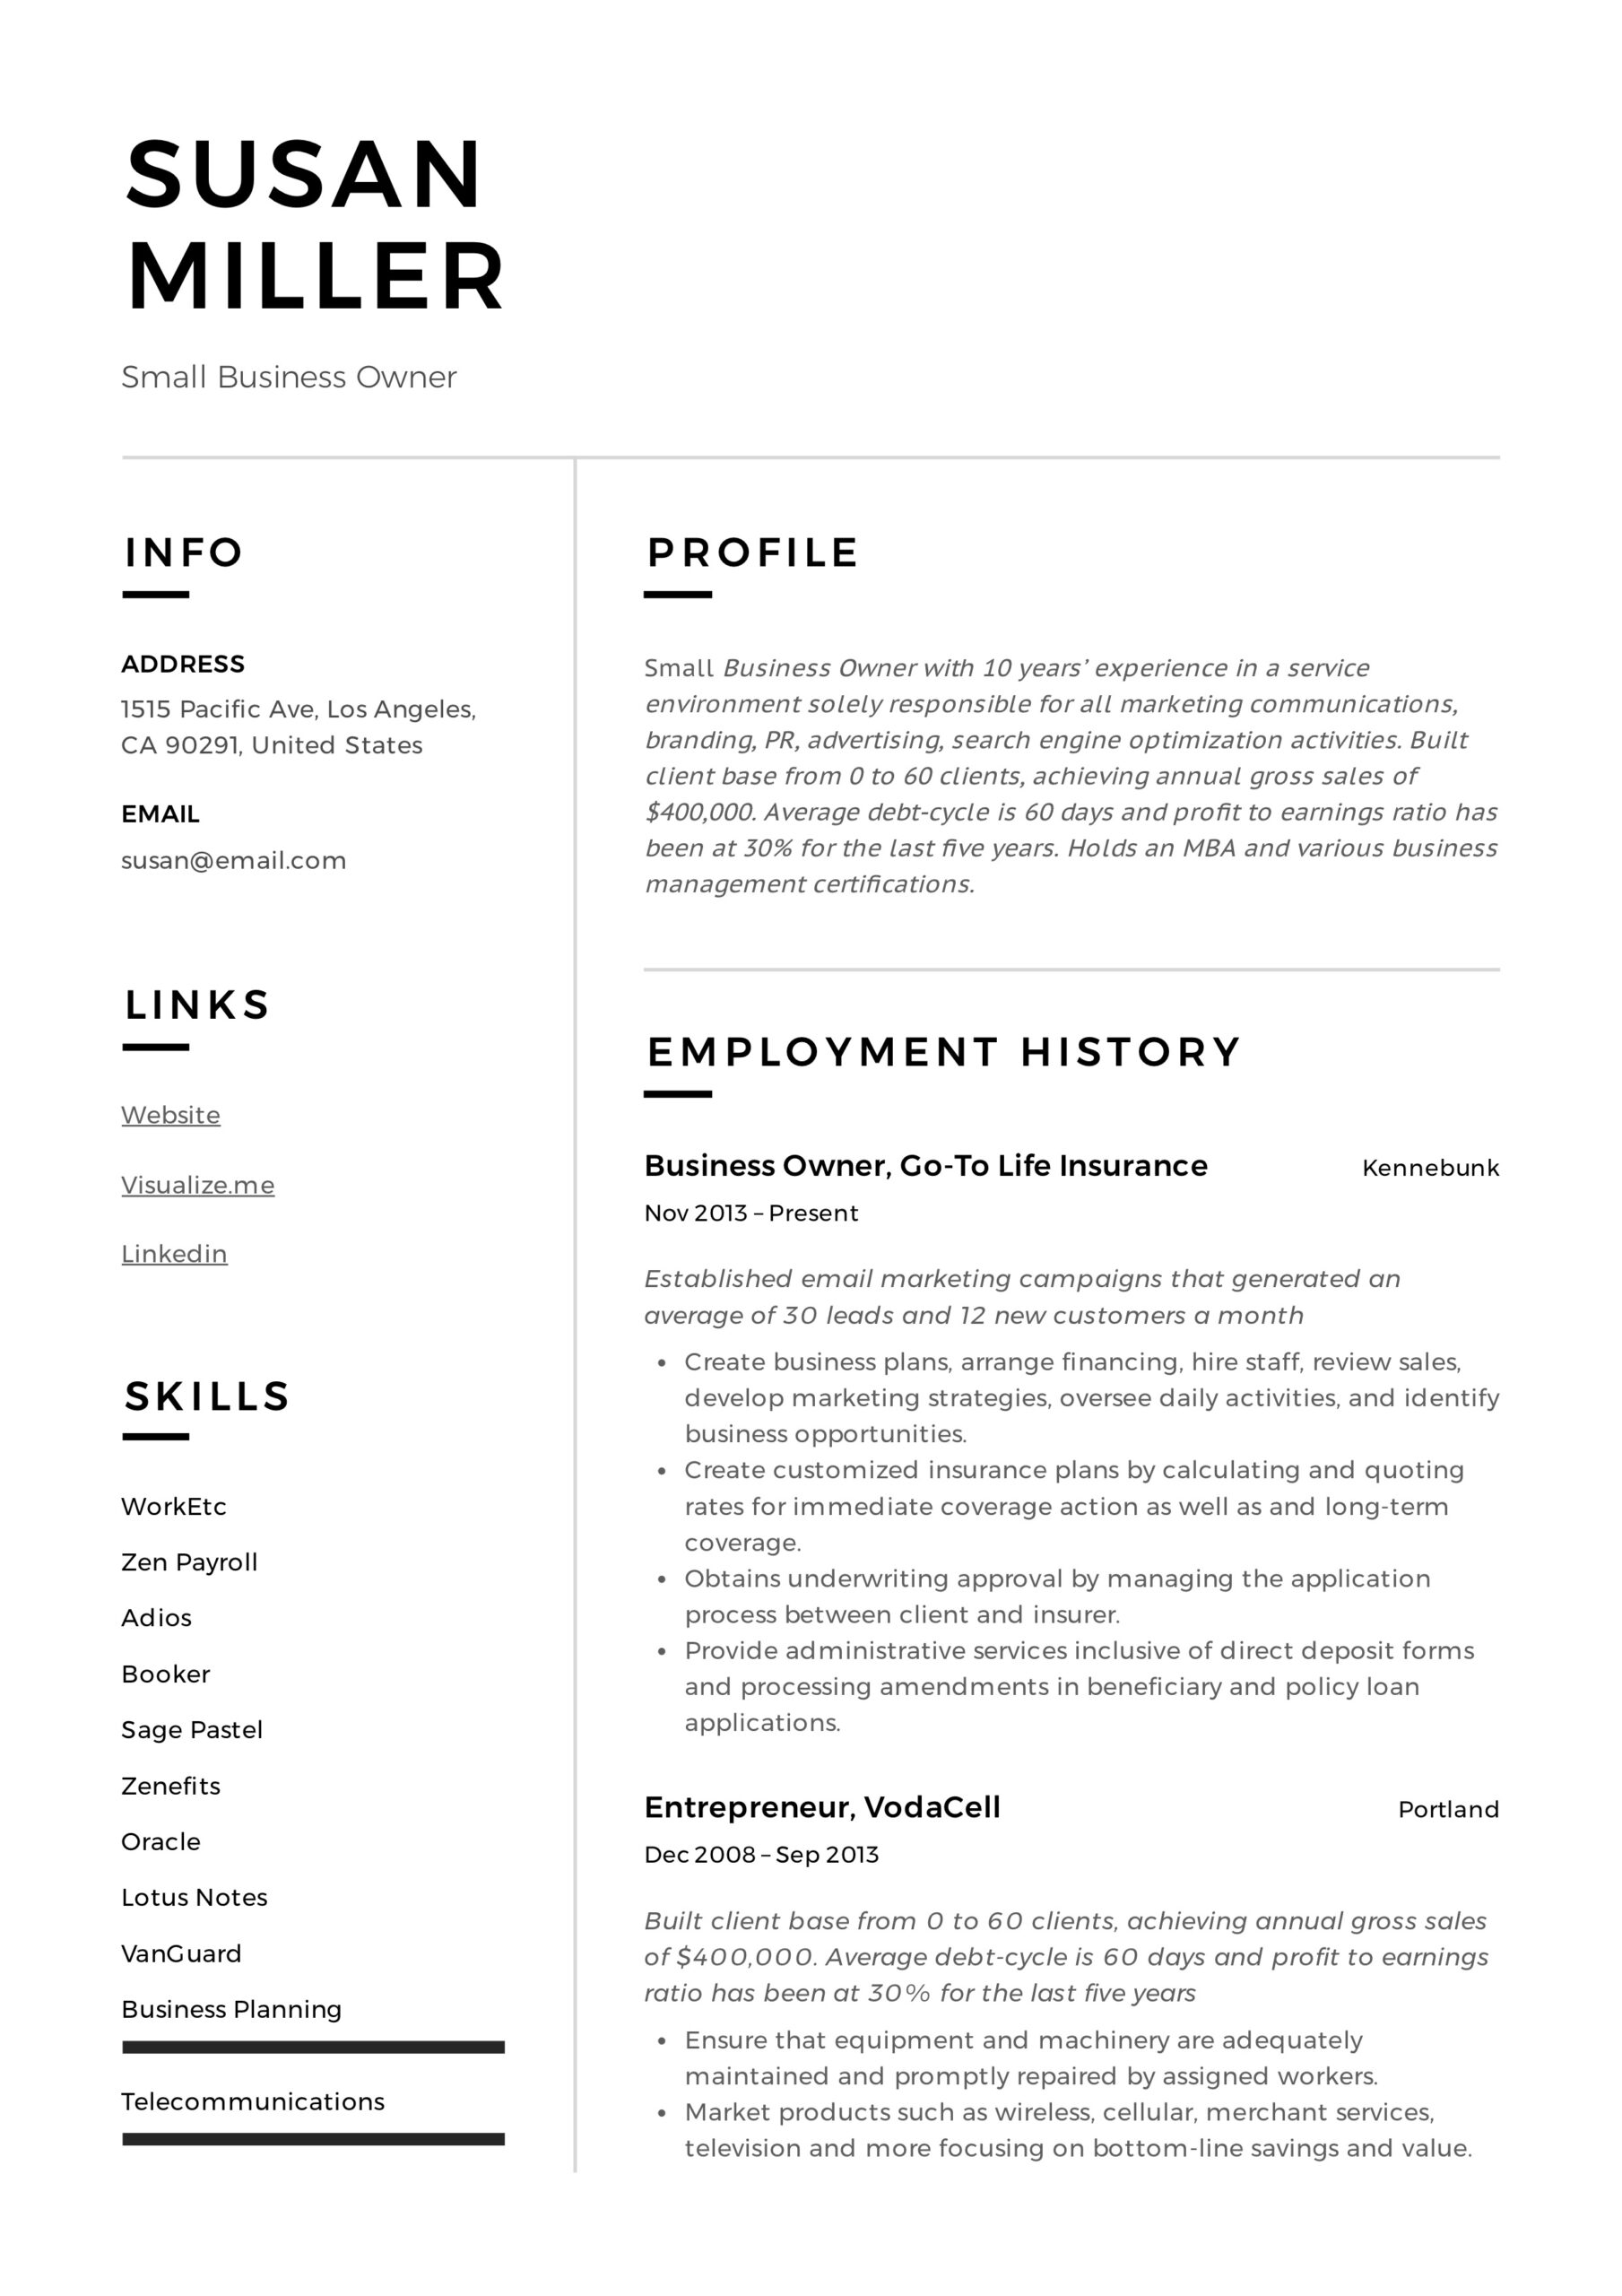 small business owner resume guide examples pdf self employed sample example made Resume Self Employed Resume Sample